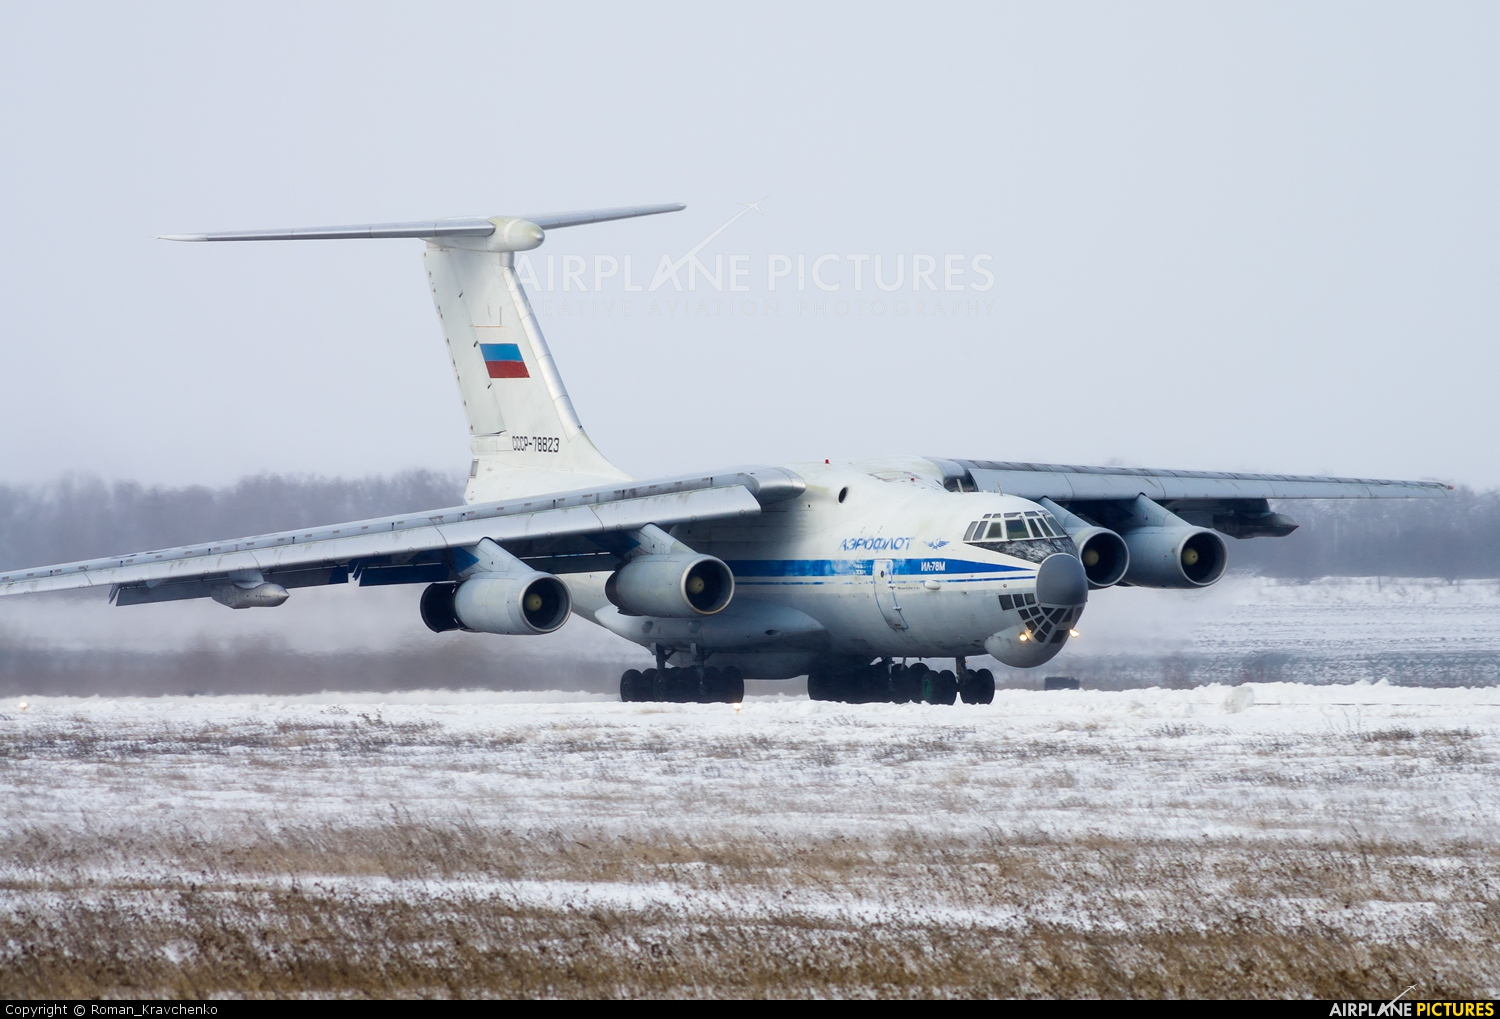 Russia - Air Force USSR-78823 aircraft at Undisclosed Location